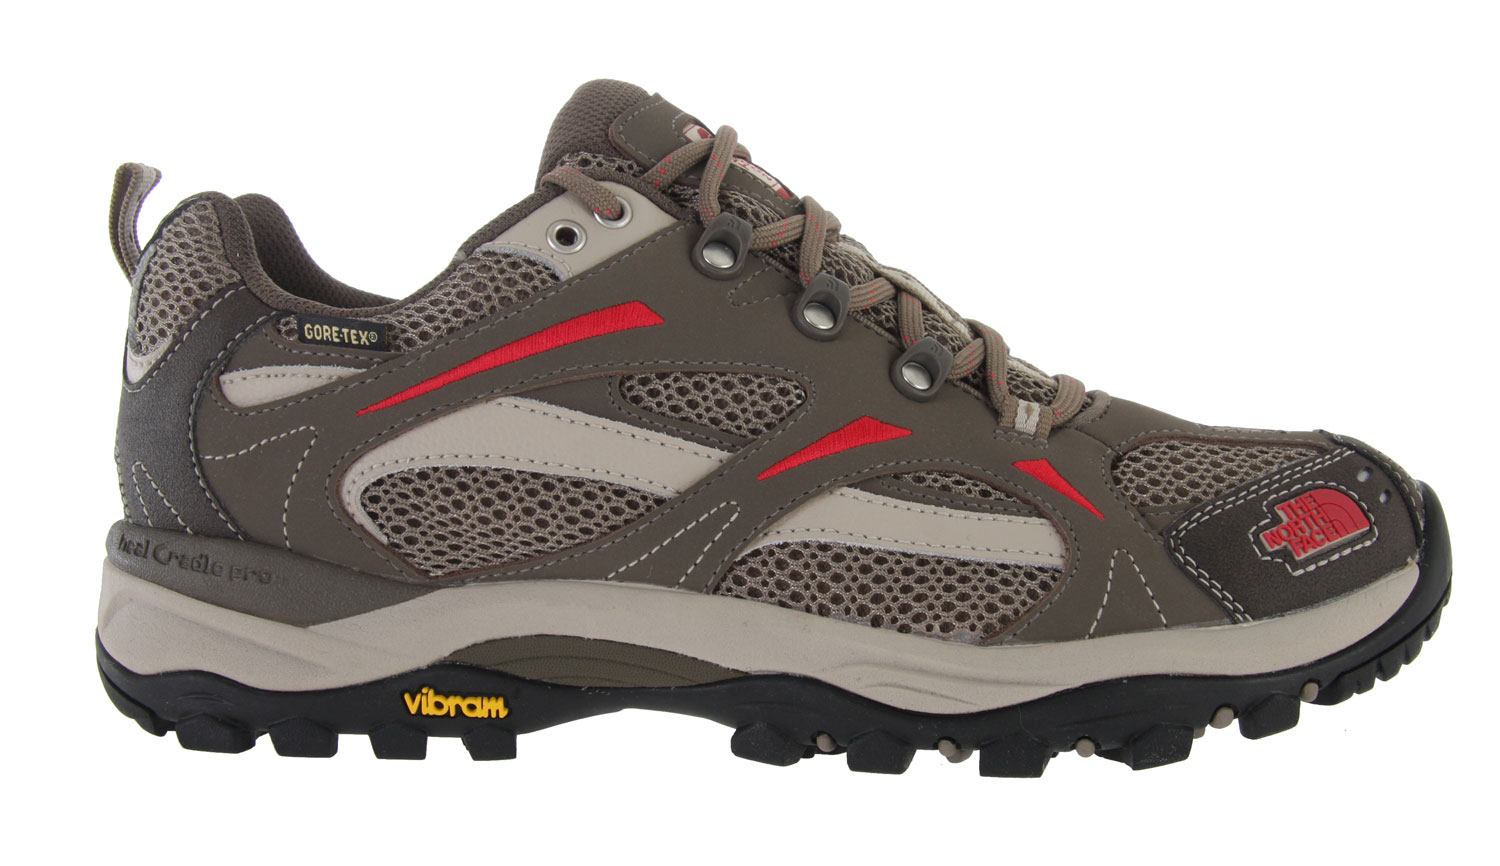 Camp and Hike The North Face Hedgehog 3 GTX Hiking Shoe is the latest update to our best-selling Hedgehog and still incorporates everything you need in a light hiker, featuring a protective, waterproof and breathable upper with GORE-TEX and a women's specific, lightweight, supportive bottom unit with Vibram rubber for secure traction in almost any conditions.Key Features of The North Face Hedgehog 3 GTX Hiking Shoes: GORE-TEX Extended Comfort Range waterproof, breathable membrane PU-coated leather upper with breathable mesh panels Northotic Pro upgraded EVA footbed with Poron ReSource heel and forefoot cushioning pads and ESS Heal Cradle Pro support X-2 dual-density, compression-molded EVA midsole with Heal Cradle Pro rearfoot support system Injection-molded TPU shank plate Exclusive lightweight Vibram rubber outsole - $70.95